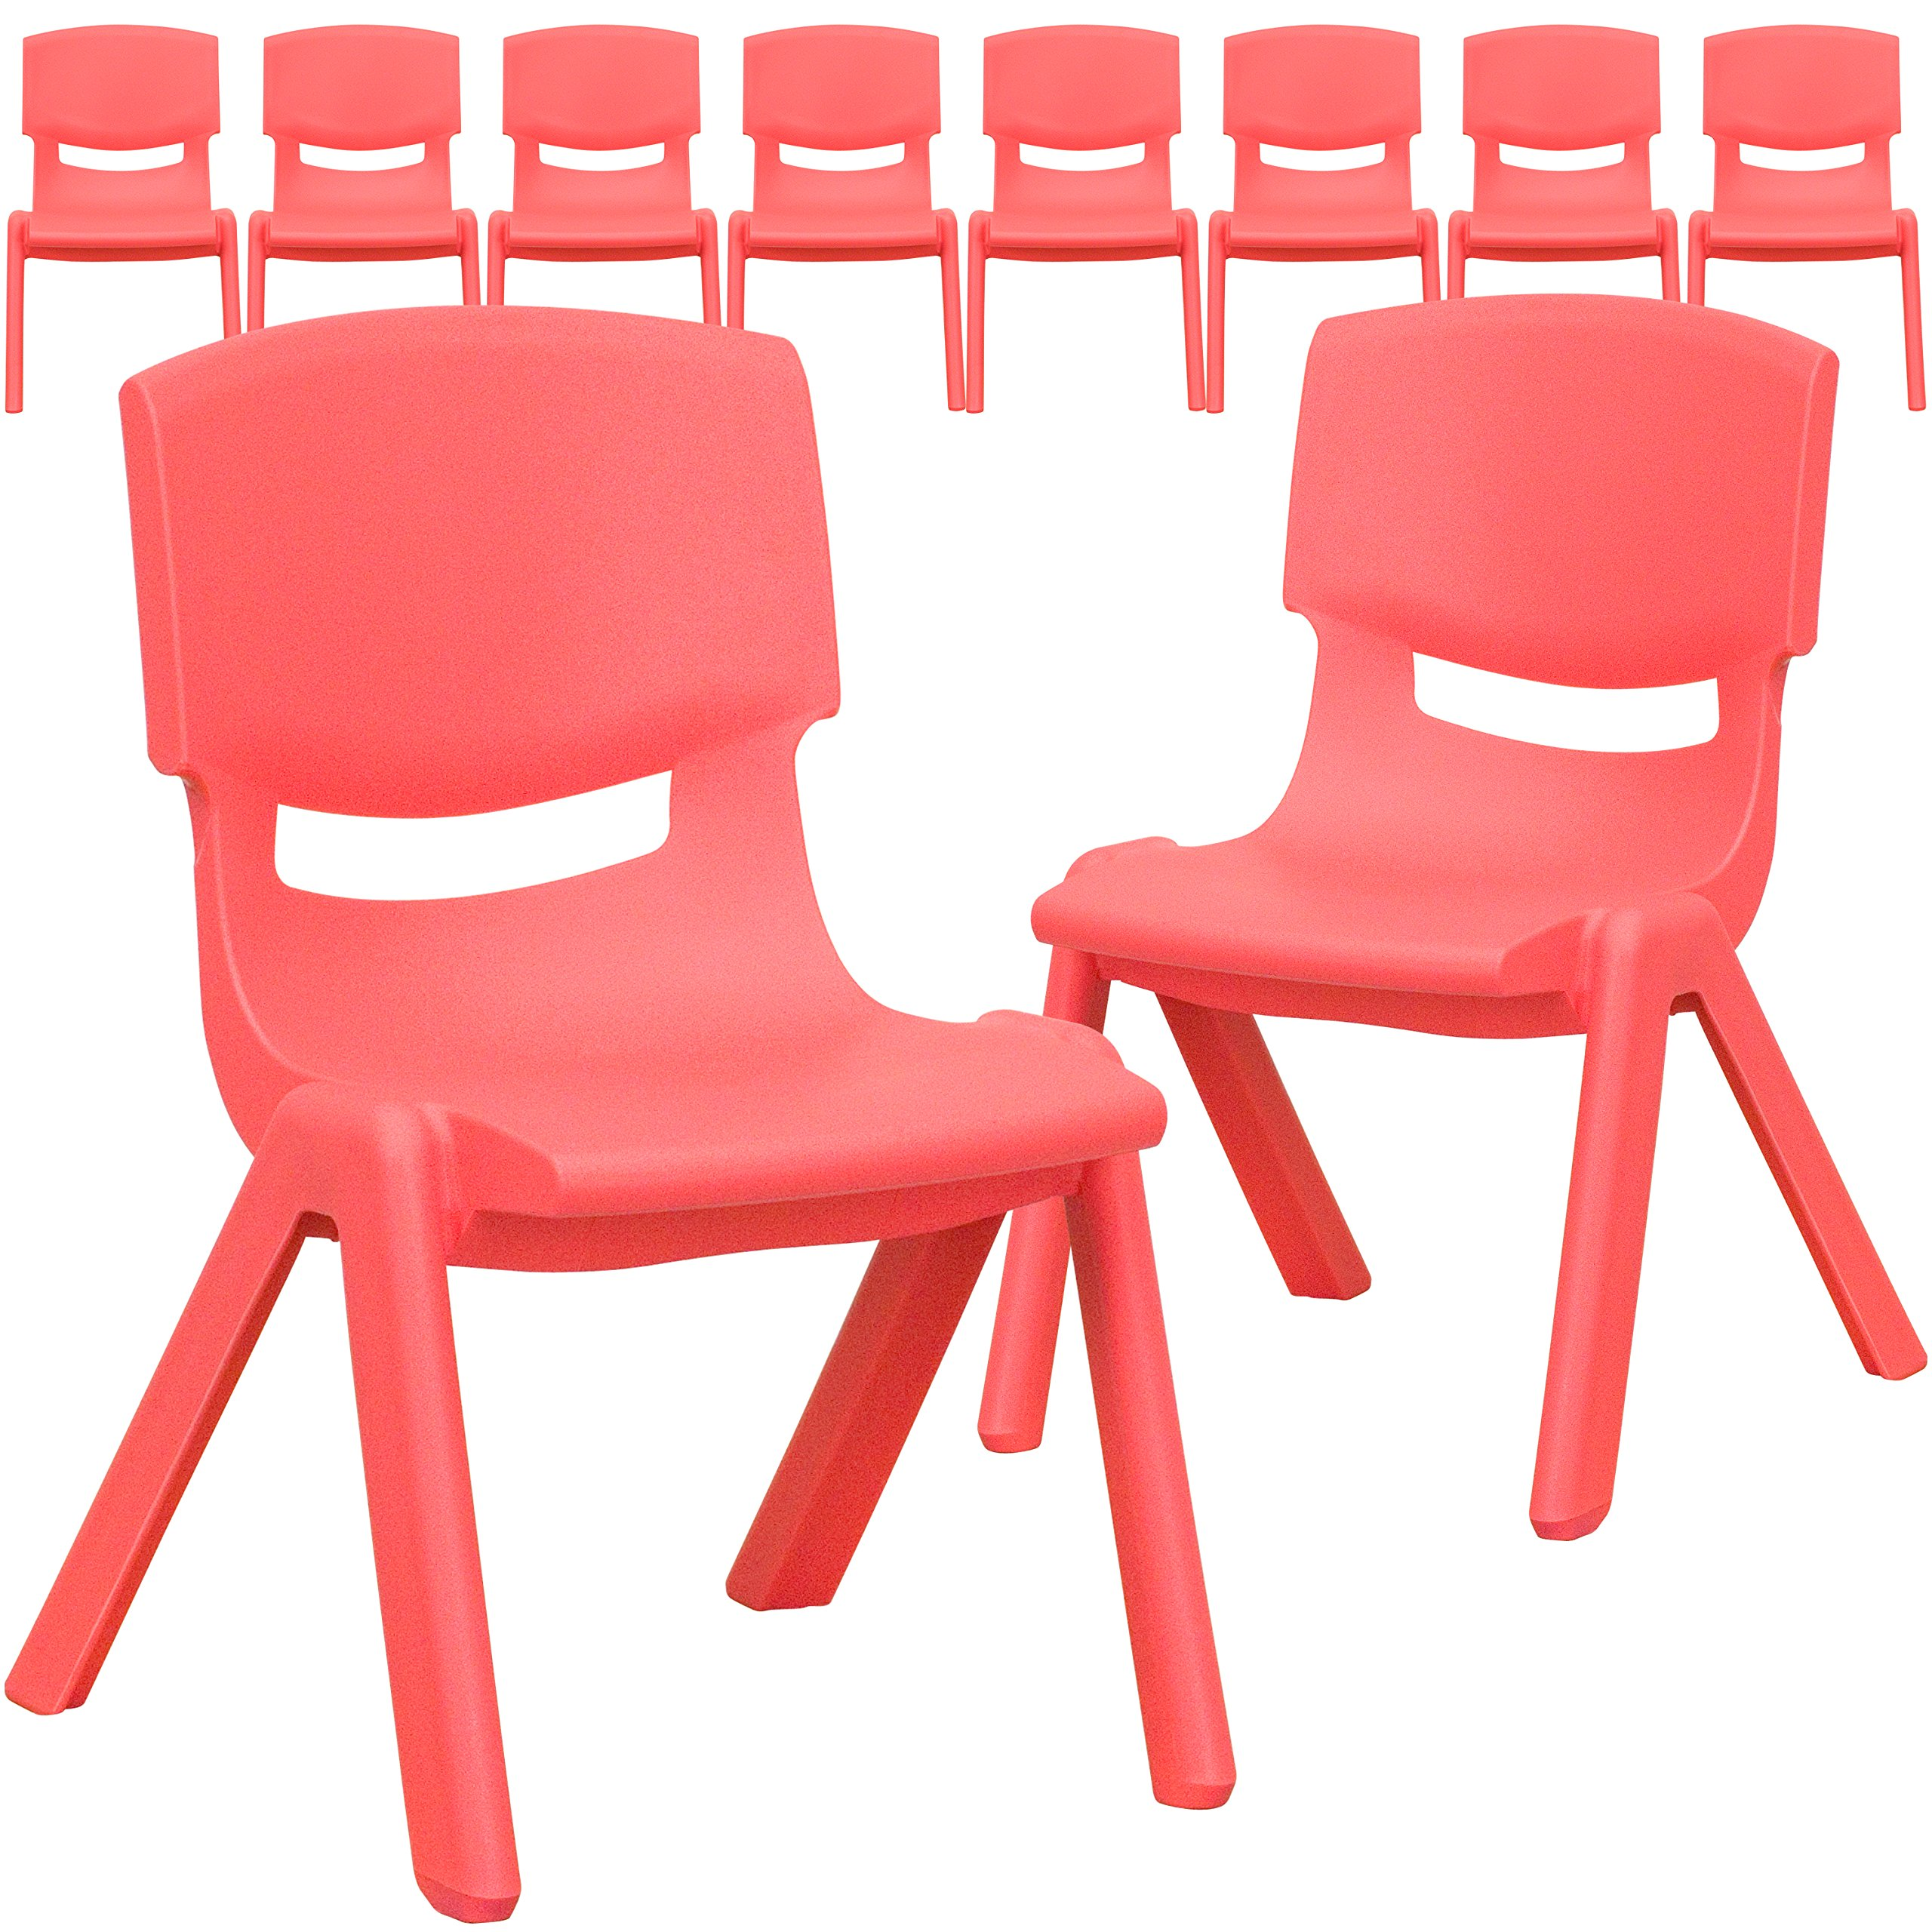 Flash Furniture 10 Pk. Red Plastic Stackable School Chair with 10.5'' Seat Height - by Flash Furniture